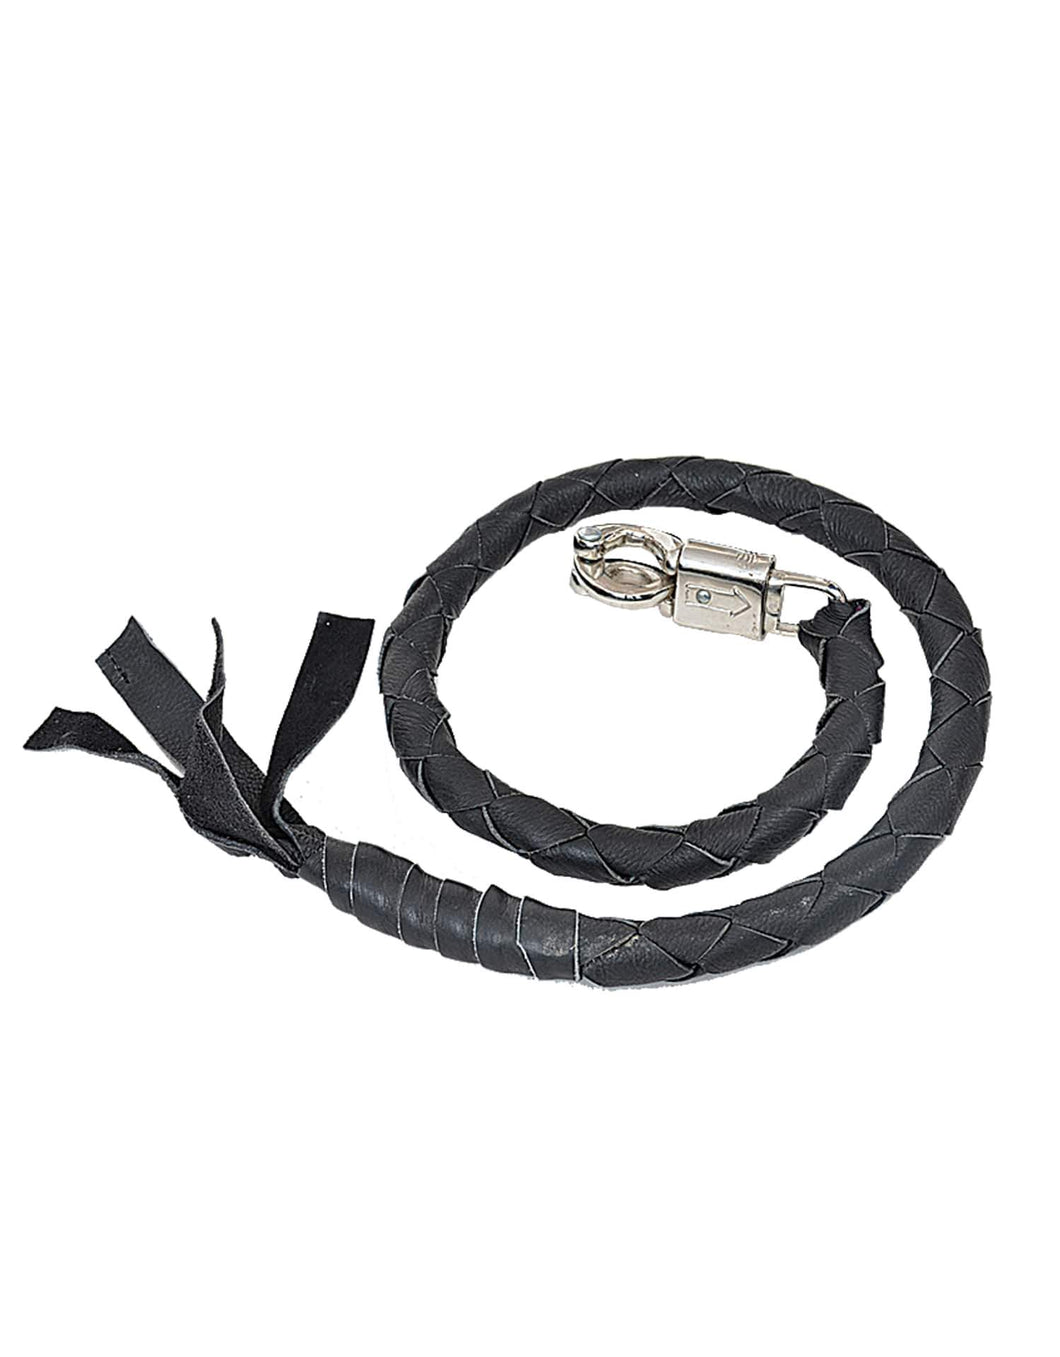 UNIK Biker Motorcycle Get Back Whip - Leather Lollipop